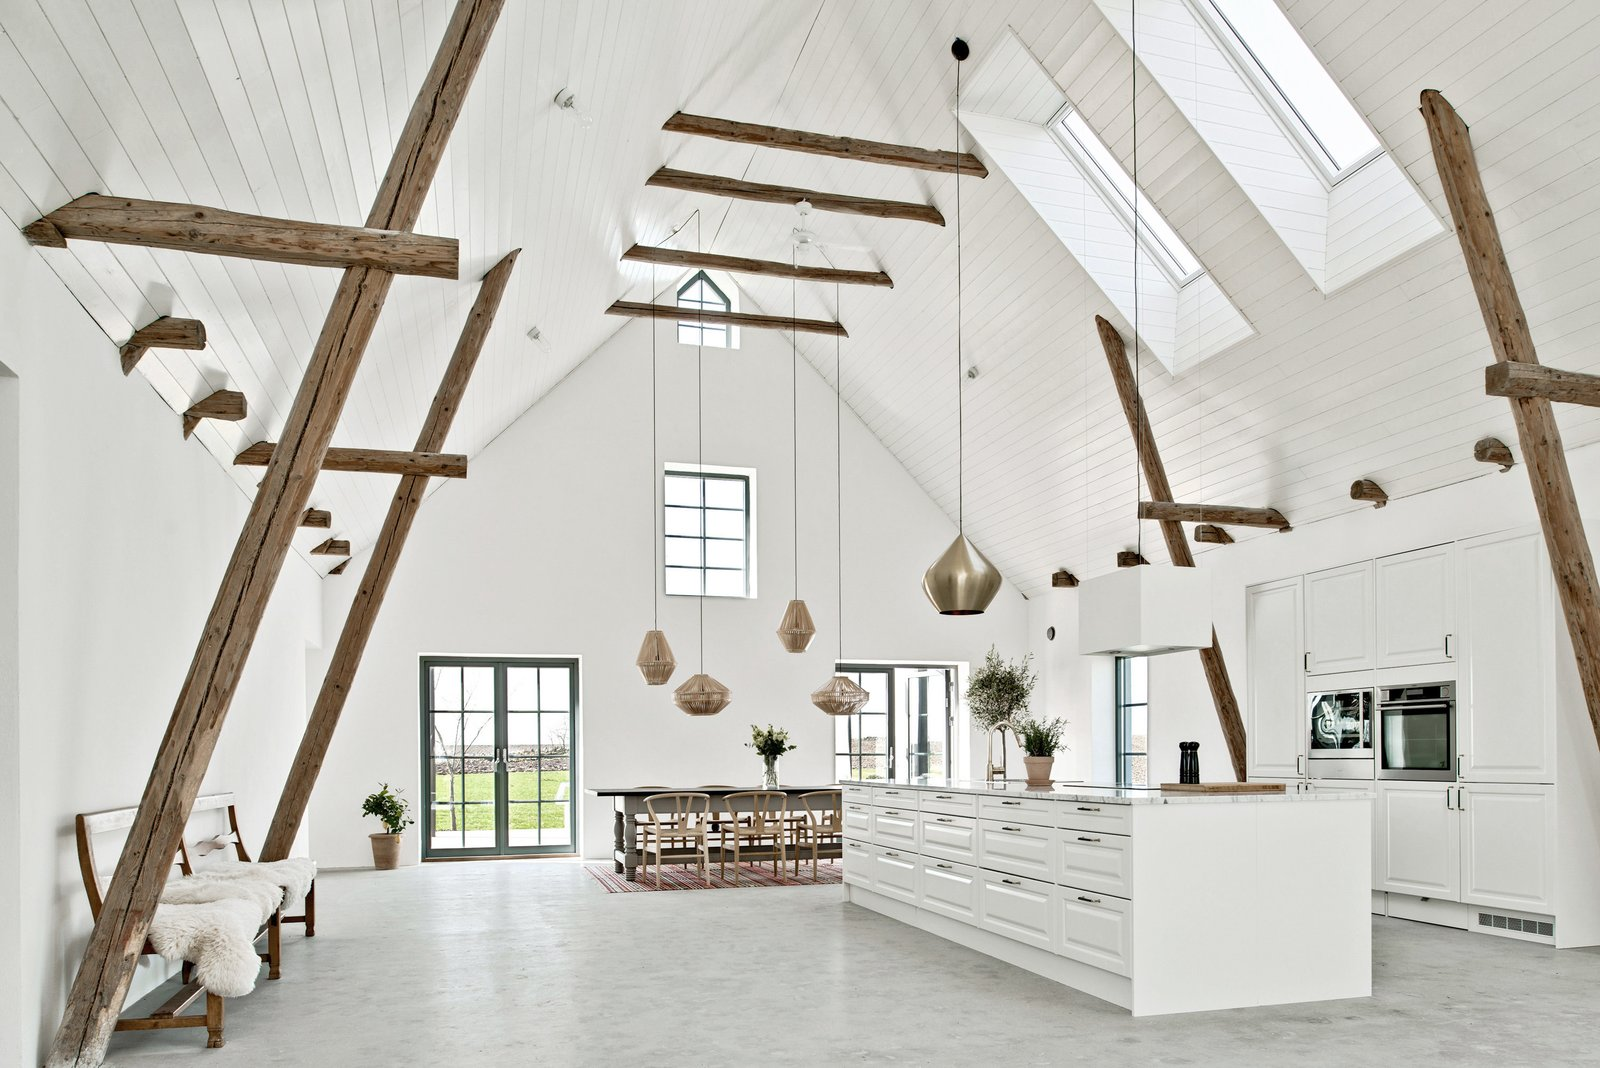 Kitchen, Concrete, Wall Oven, White, Pendant, and Marble The 4,198-square-foot home features rustic wooden beams that pay homage to the heritage of the buildings. These are set across the soaring 22-foot high ceilings.     Best Kitchen White Wall Oven Marble Pendant Photos from An Airy, Historic Home in Sweden Is Listed For Less Than $700K